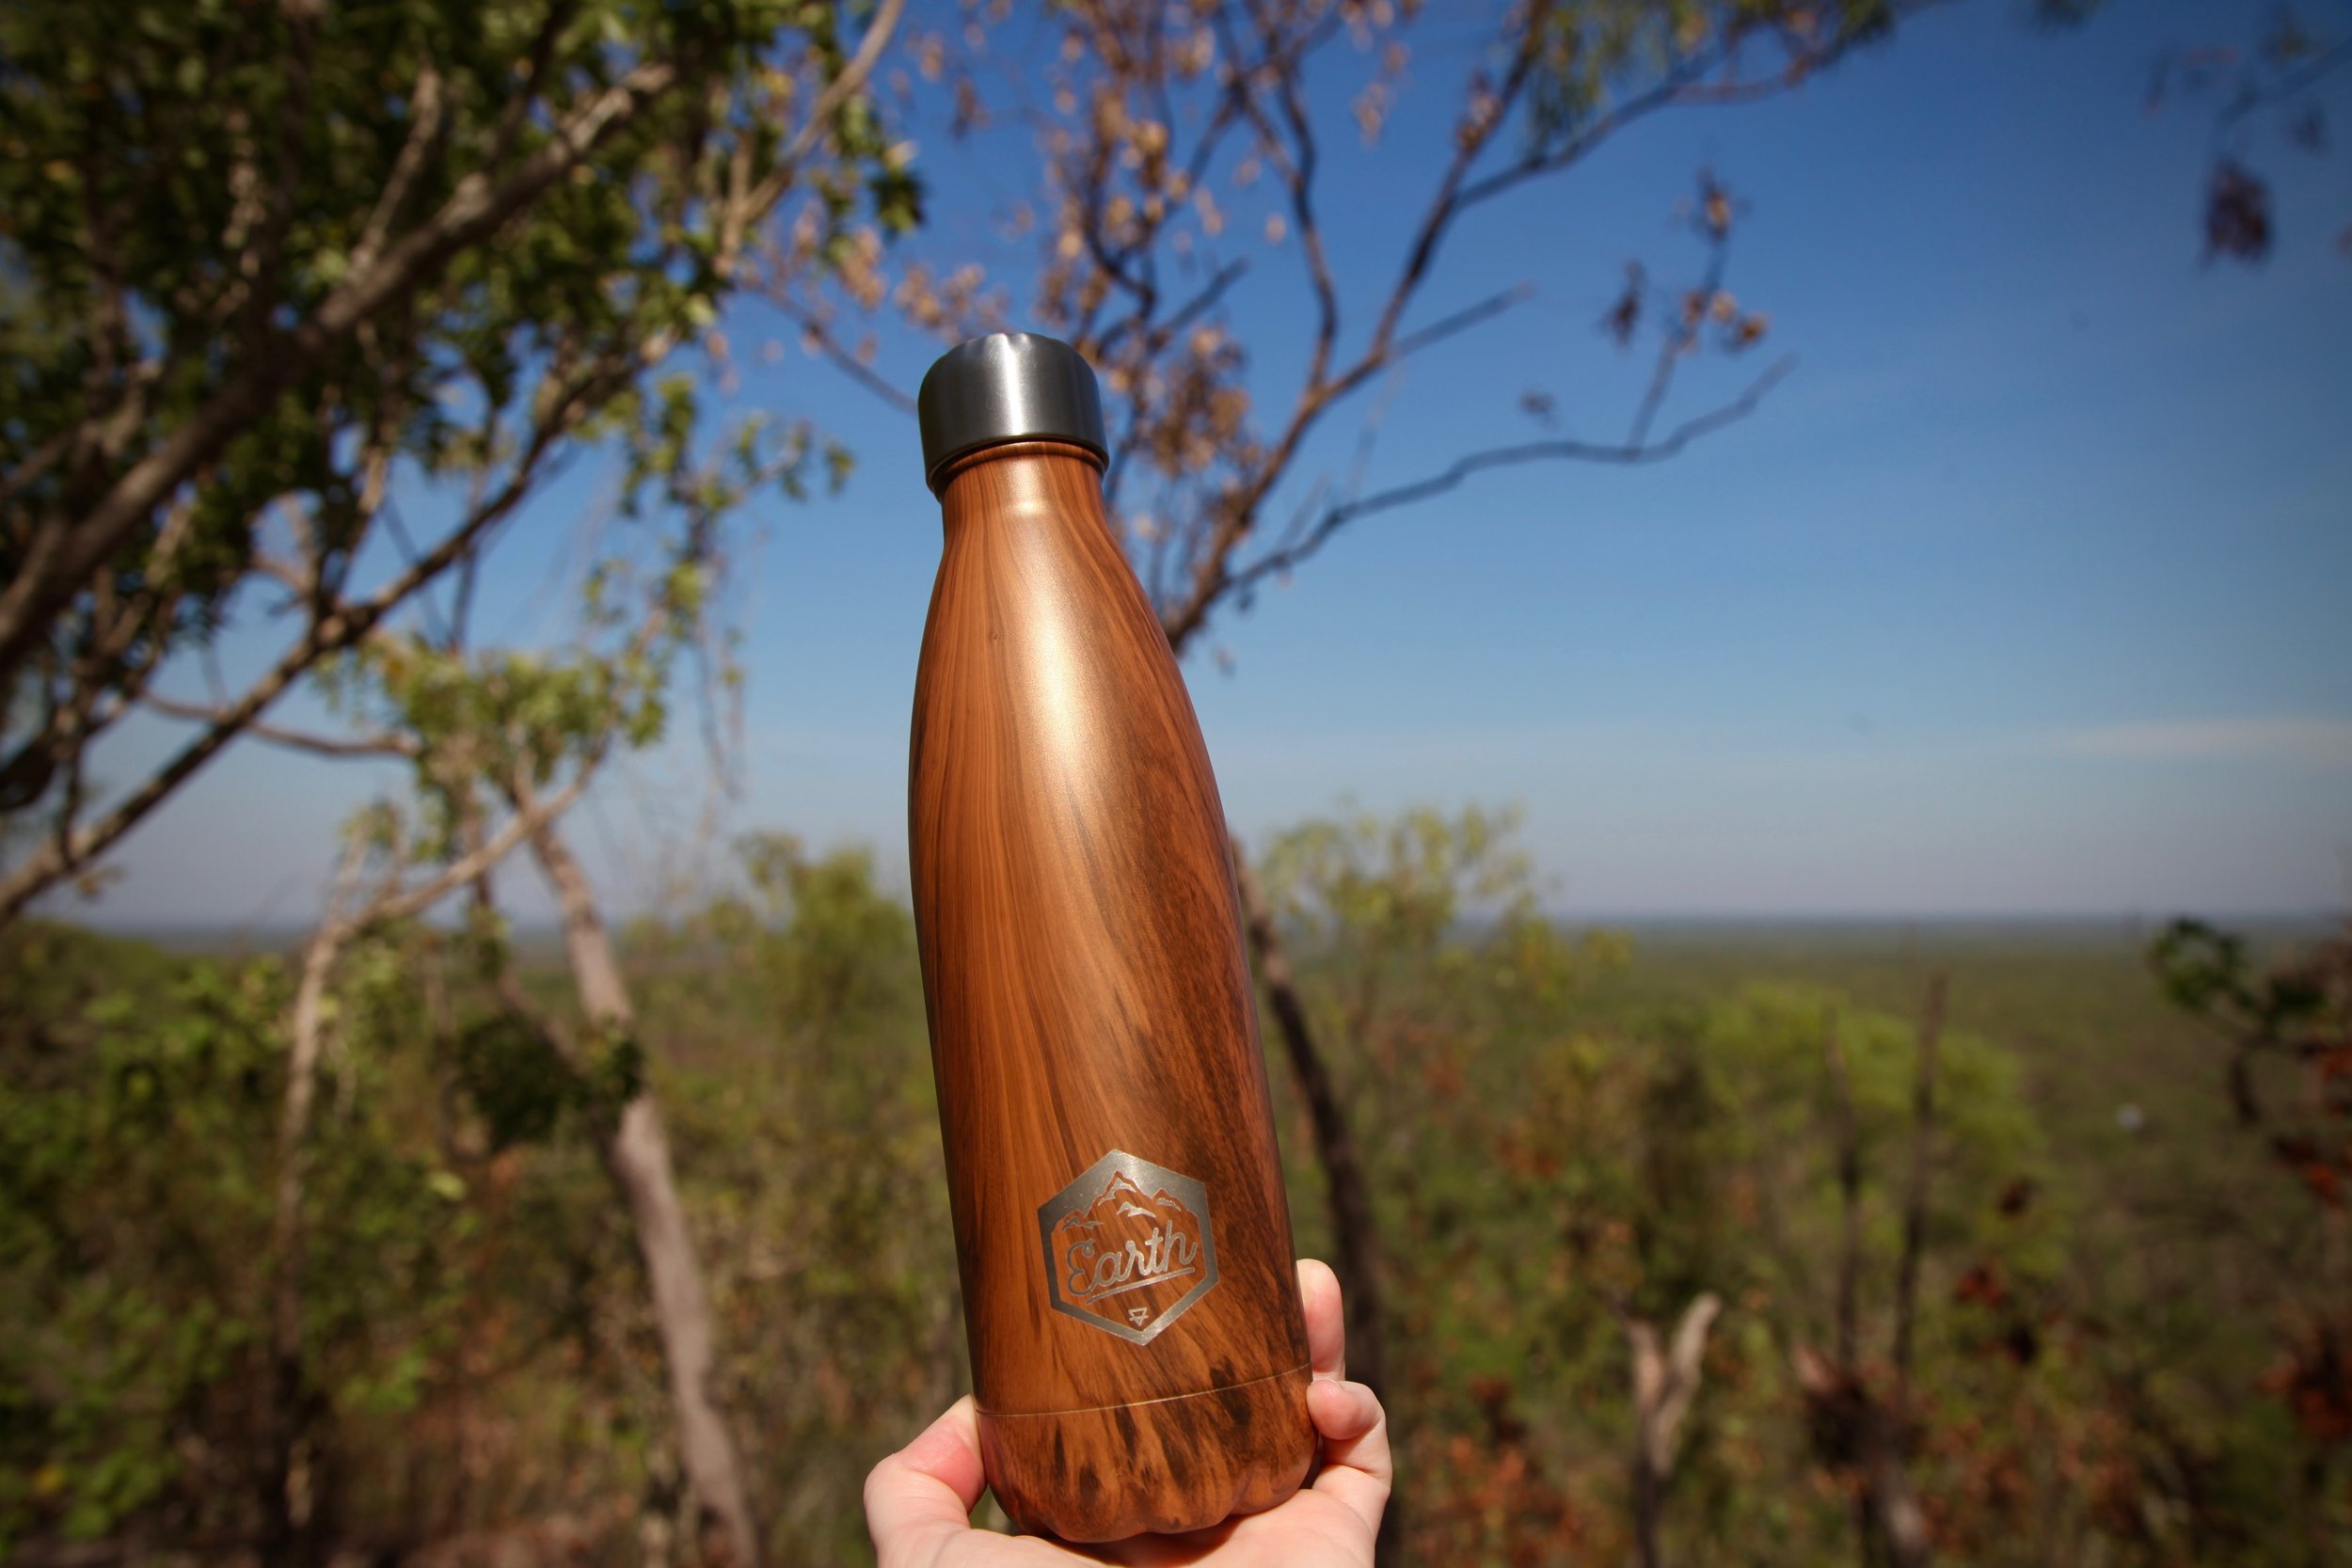 My  eco bottle  from The Seek Society got its first outing in Litchfield National Park. And boy was I stoked to have cold water after the sweaty hike up to the plateau above the Wangi Falls plunge pool.